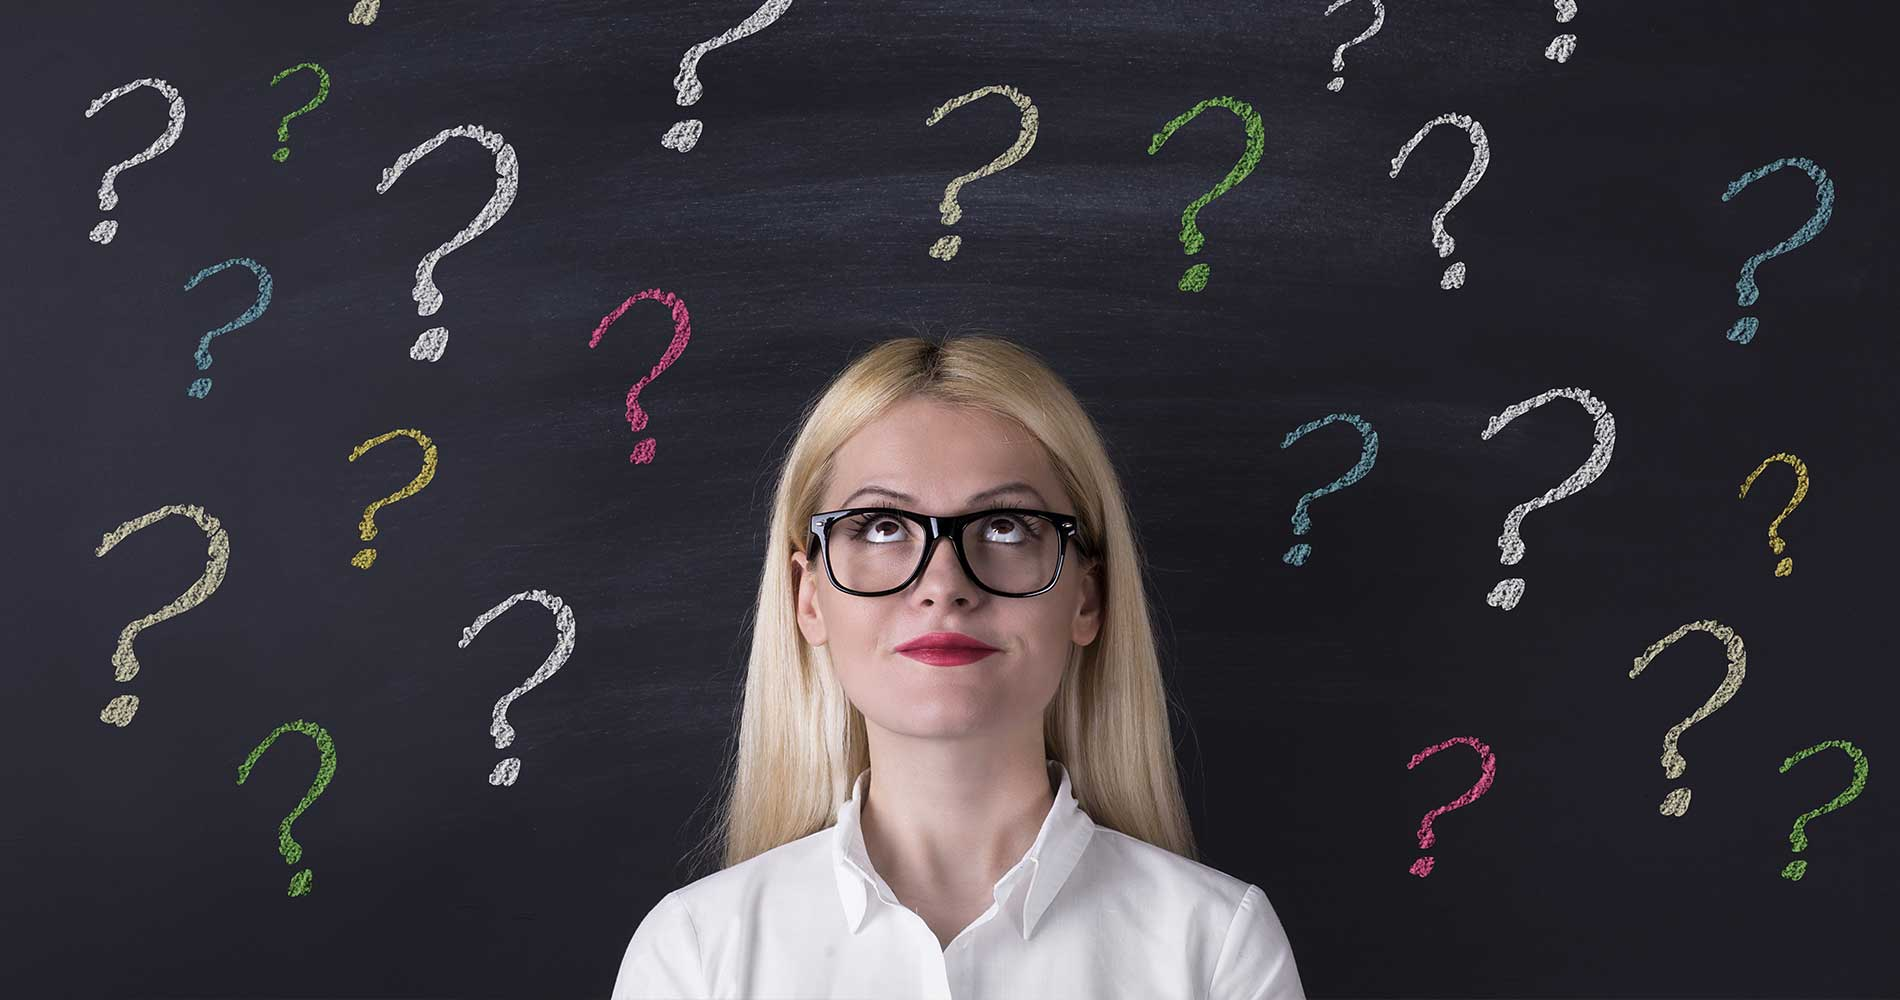 10 Questions to Ask Your Team When Looking for Meeting Room Tech